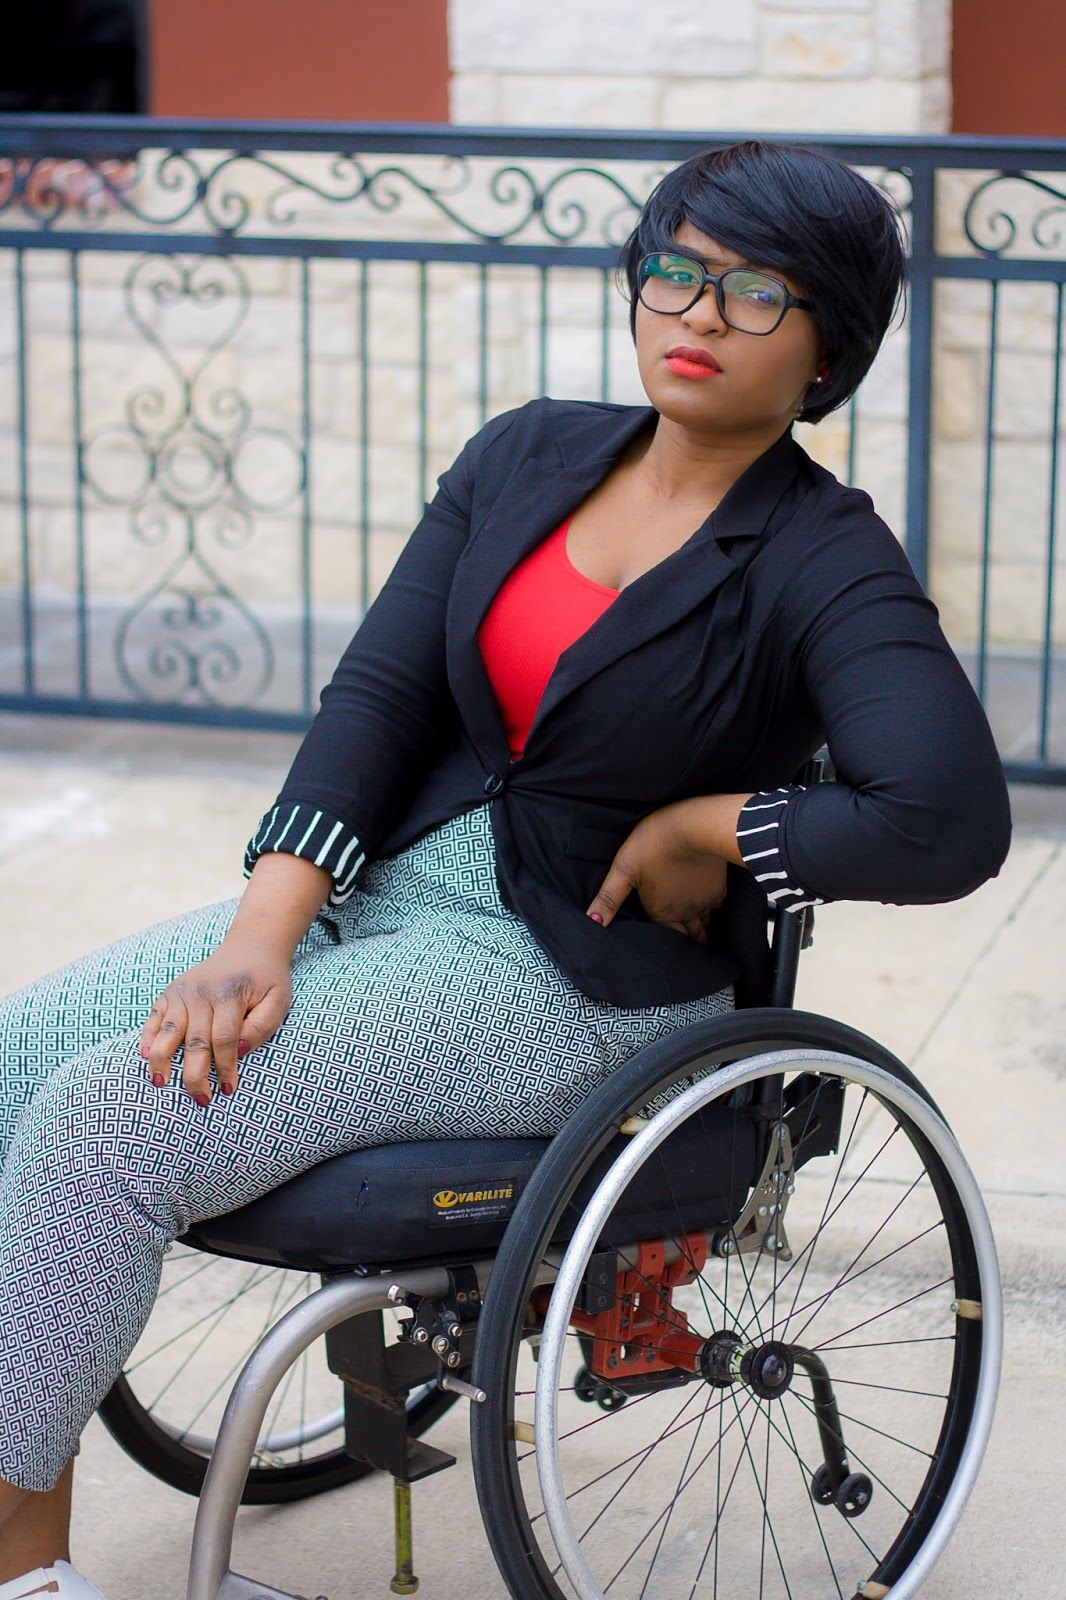 The Do It Yourself Lady Wheelchair Fashion Nerdy Chic In -1740